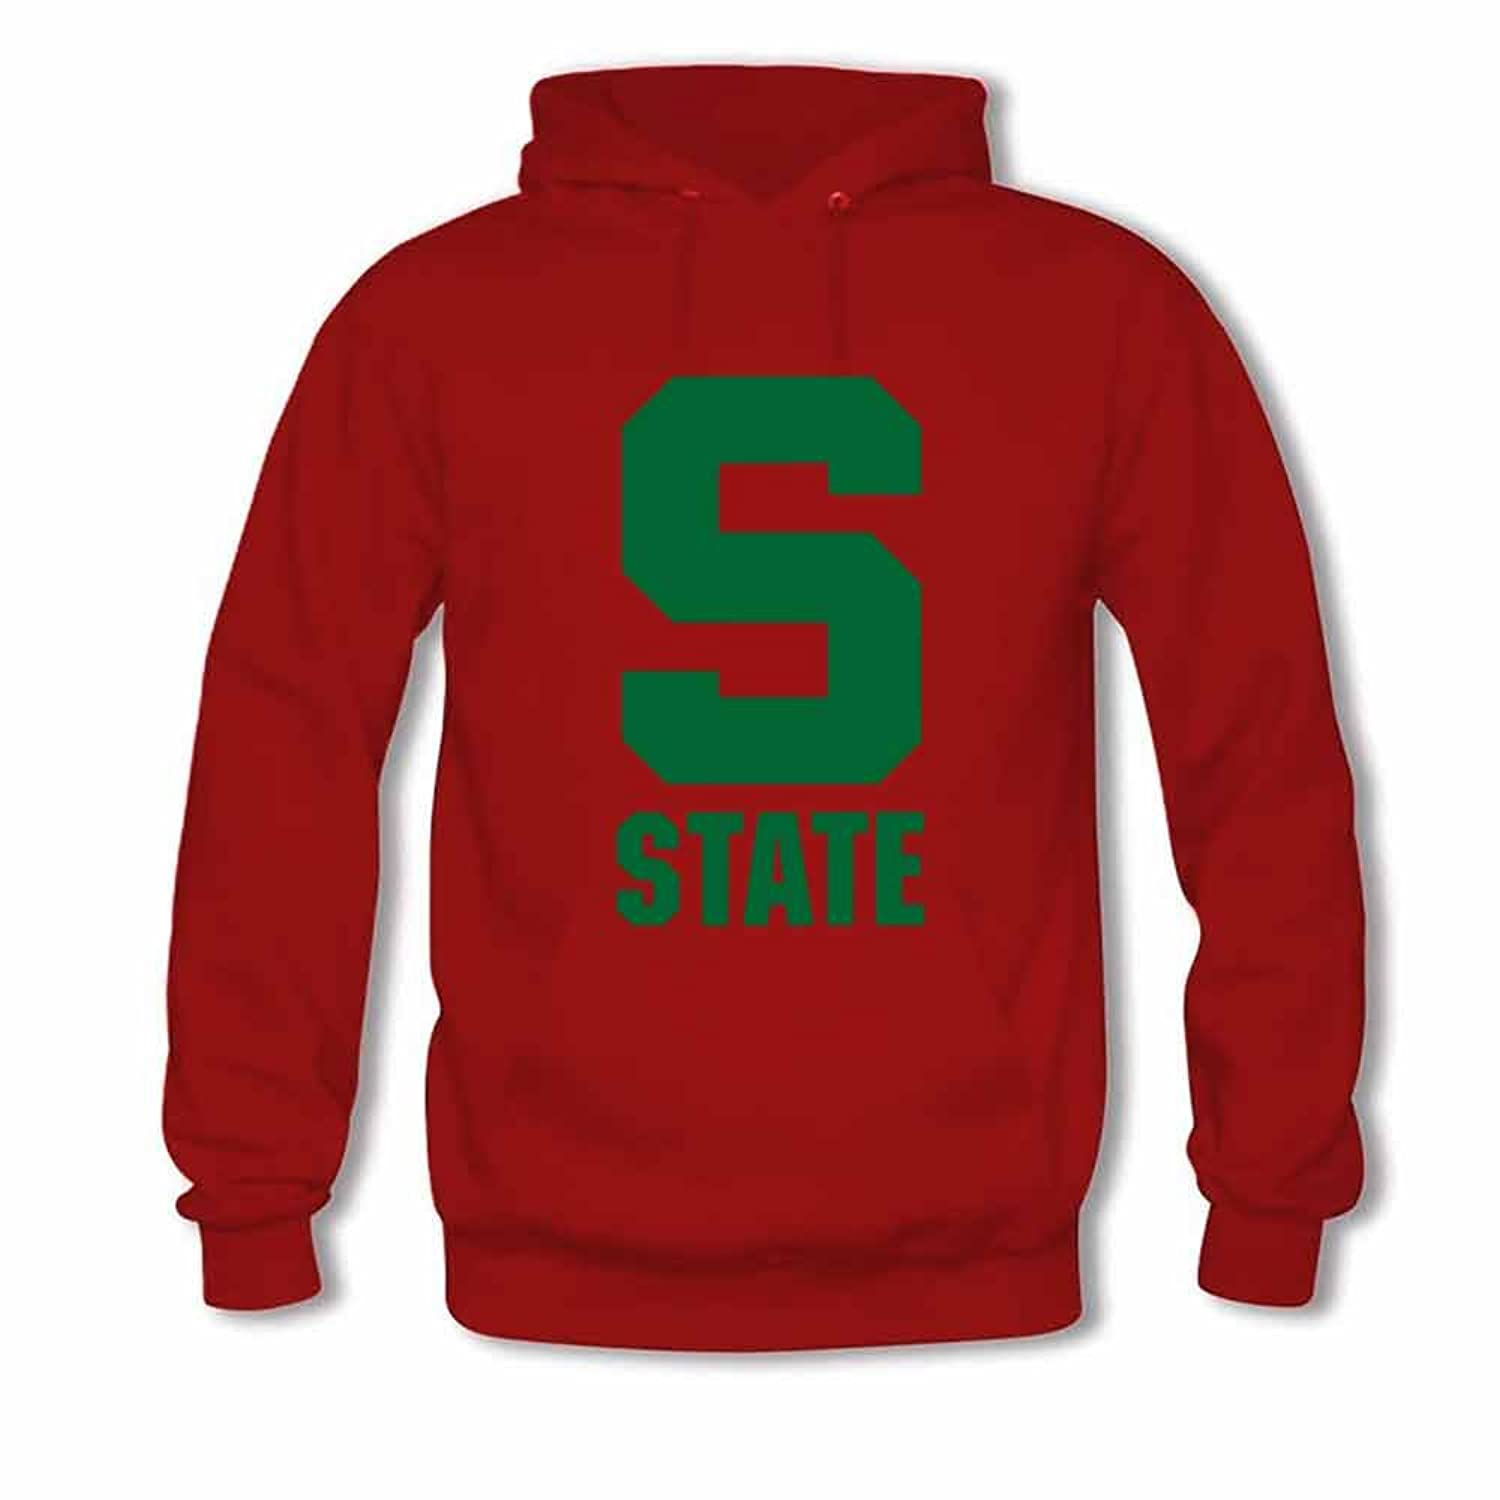 2017 New Design Mens S-state Cotton Pullover Long Sleeve Hoodie